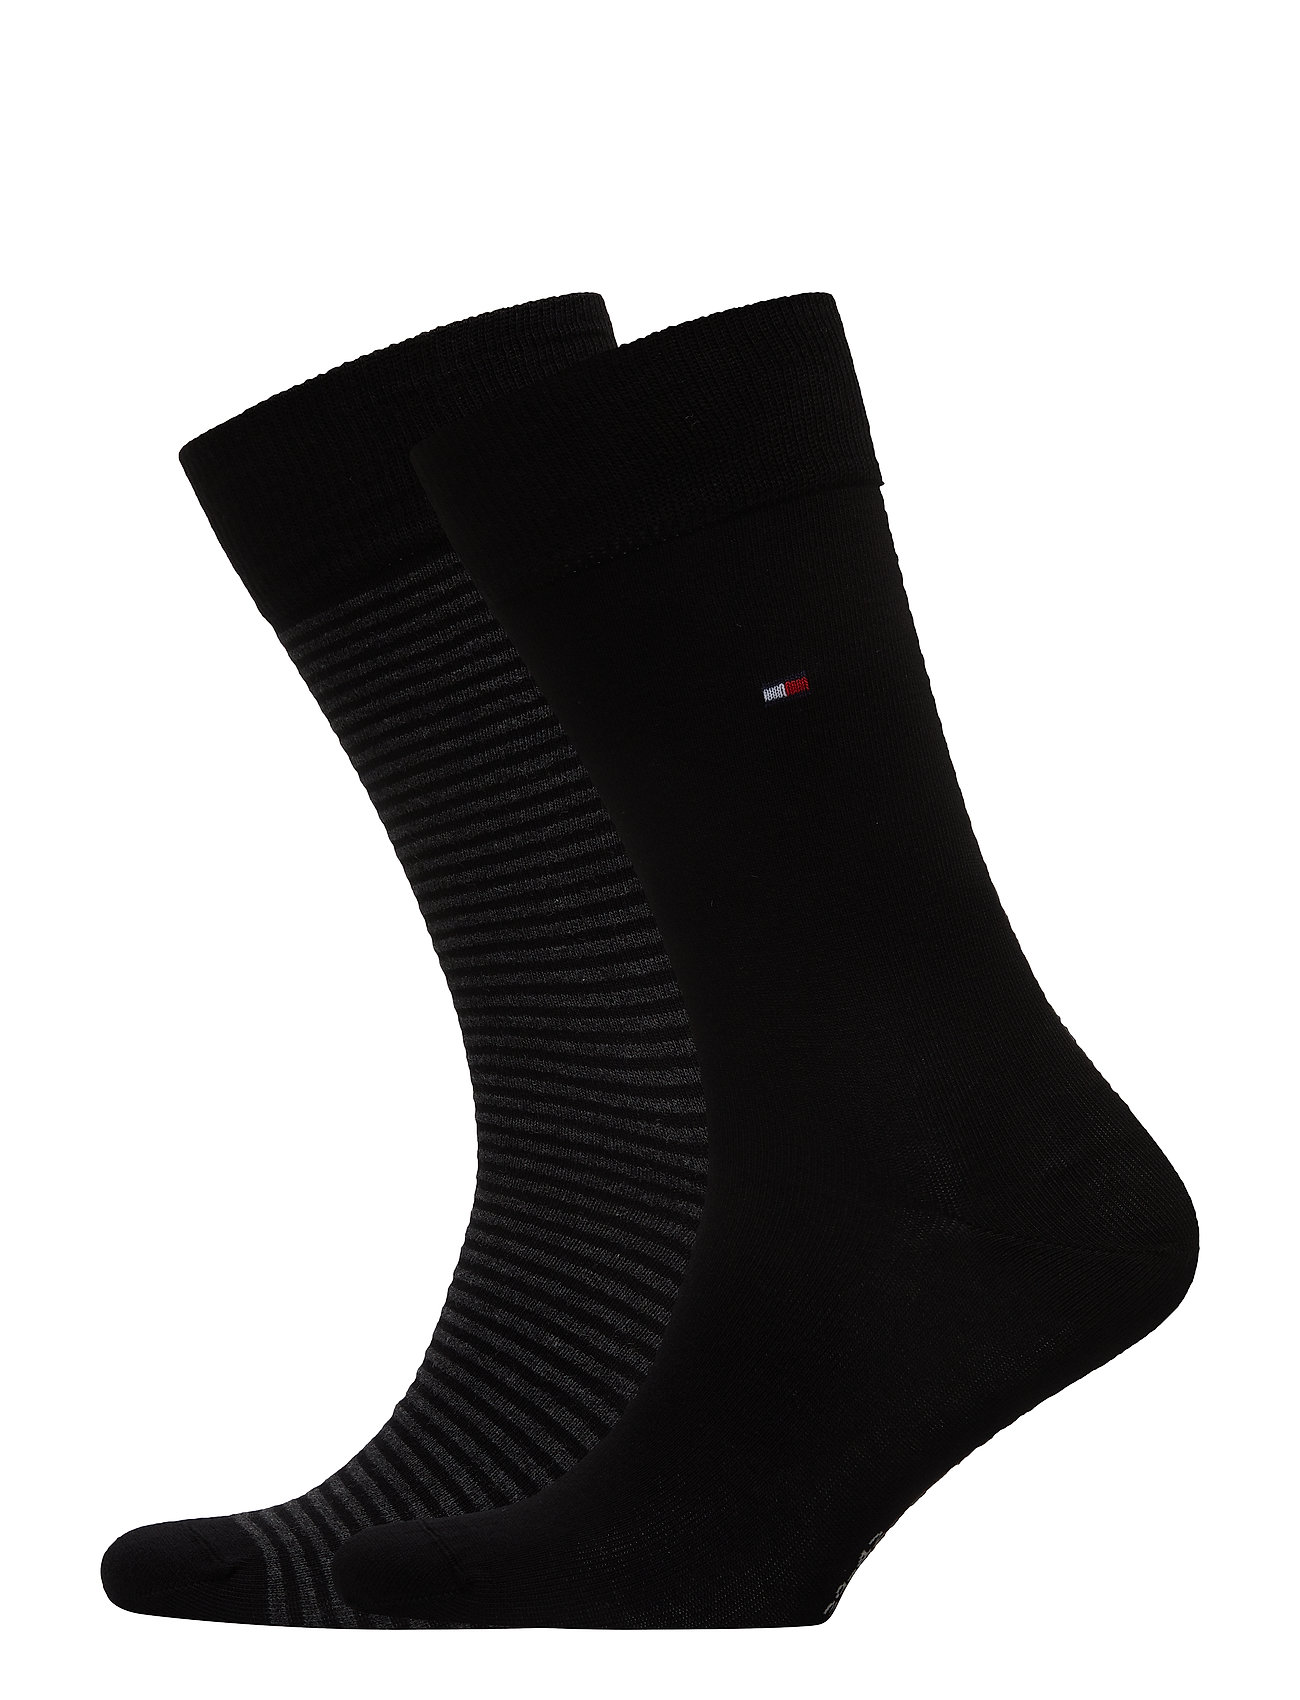 Tommy Hilfiger TH MEN SMALL STRIPE SOCK 2P - BLACK